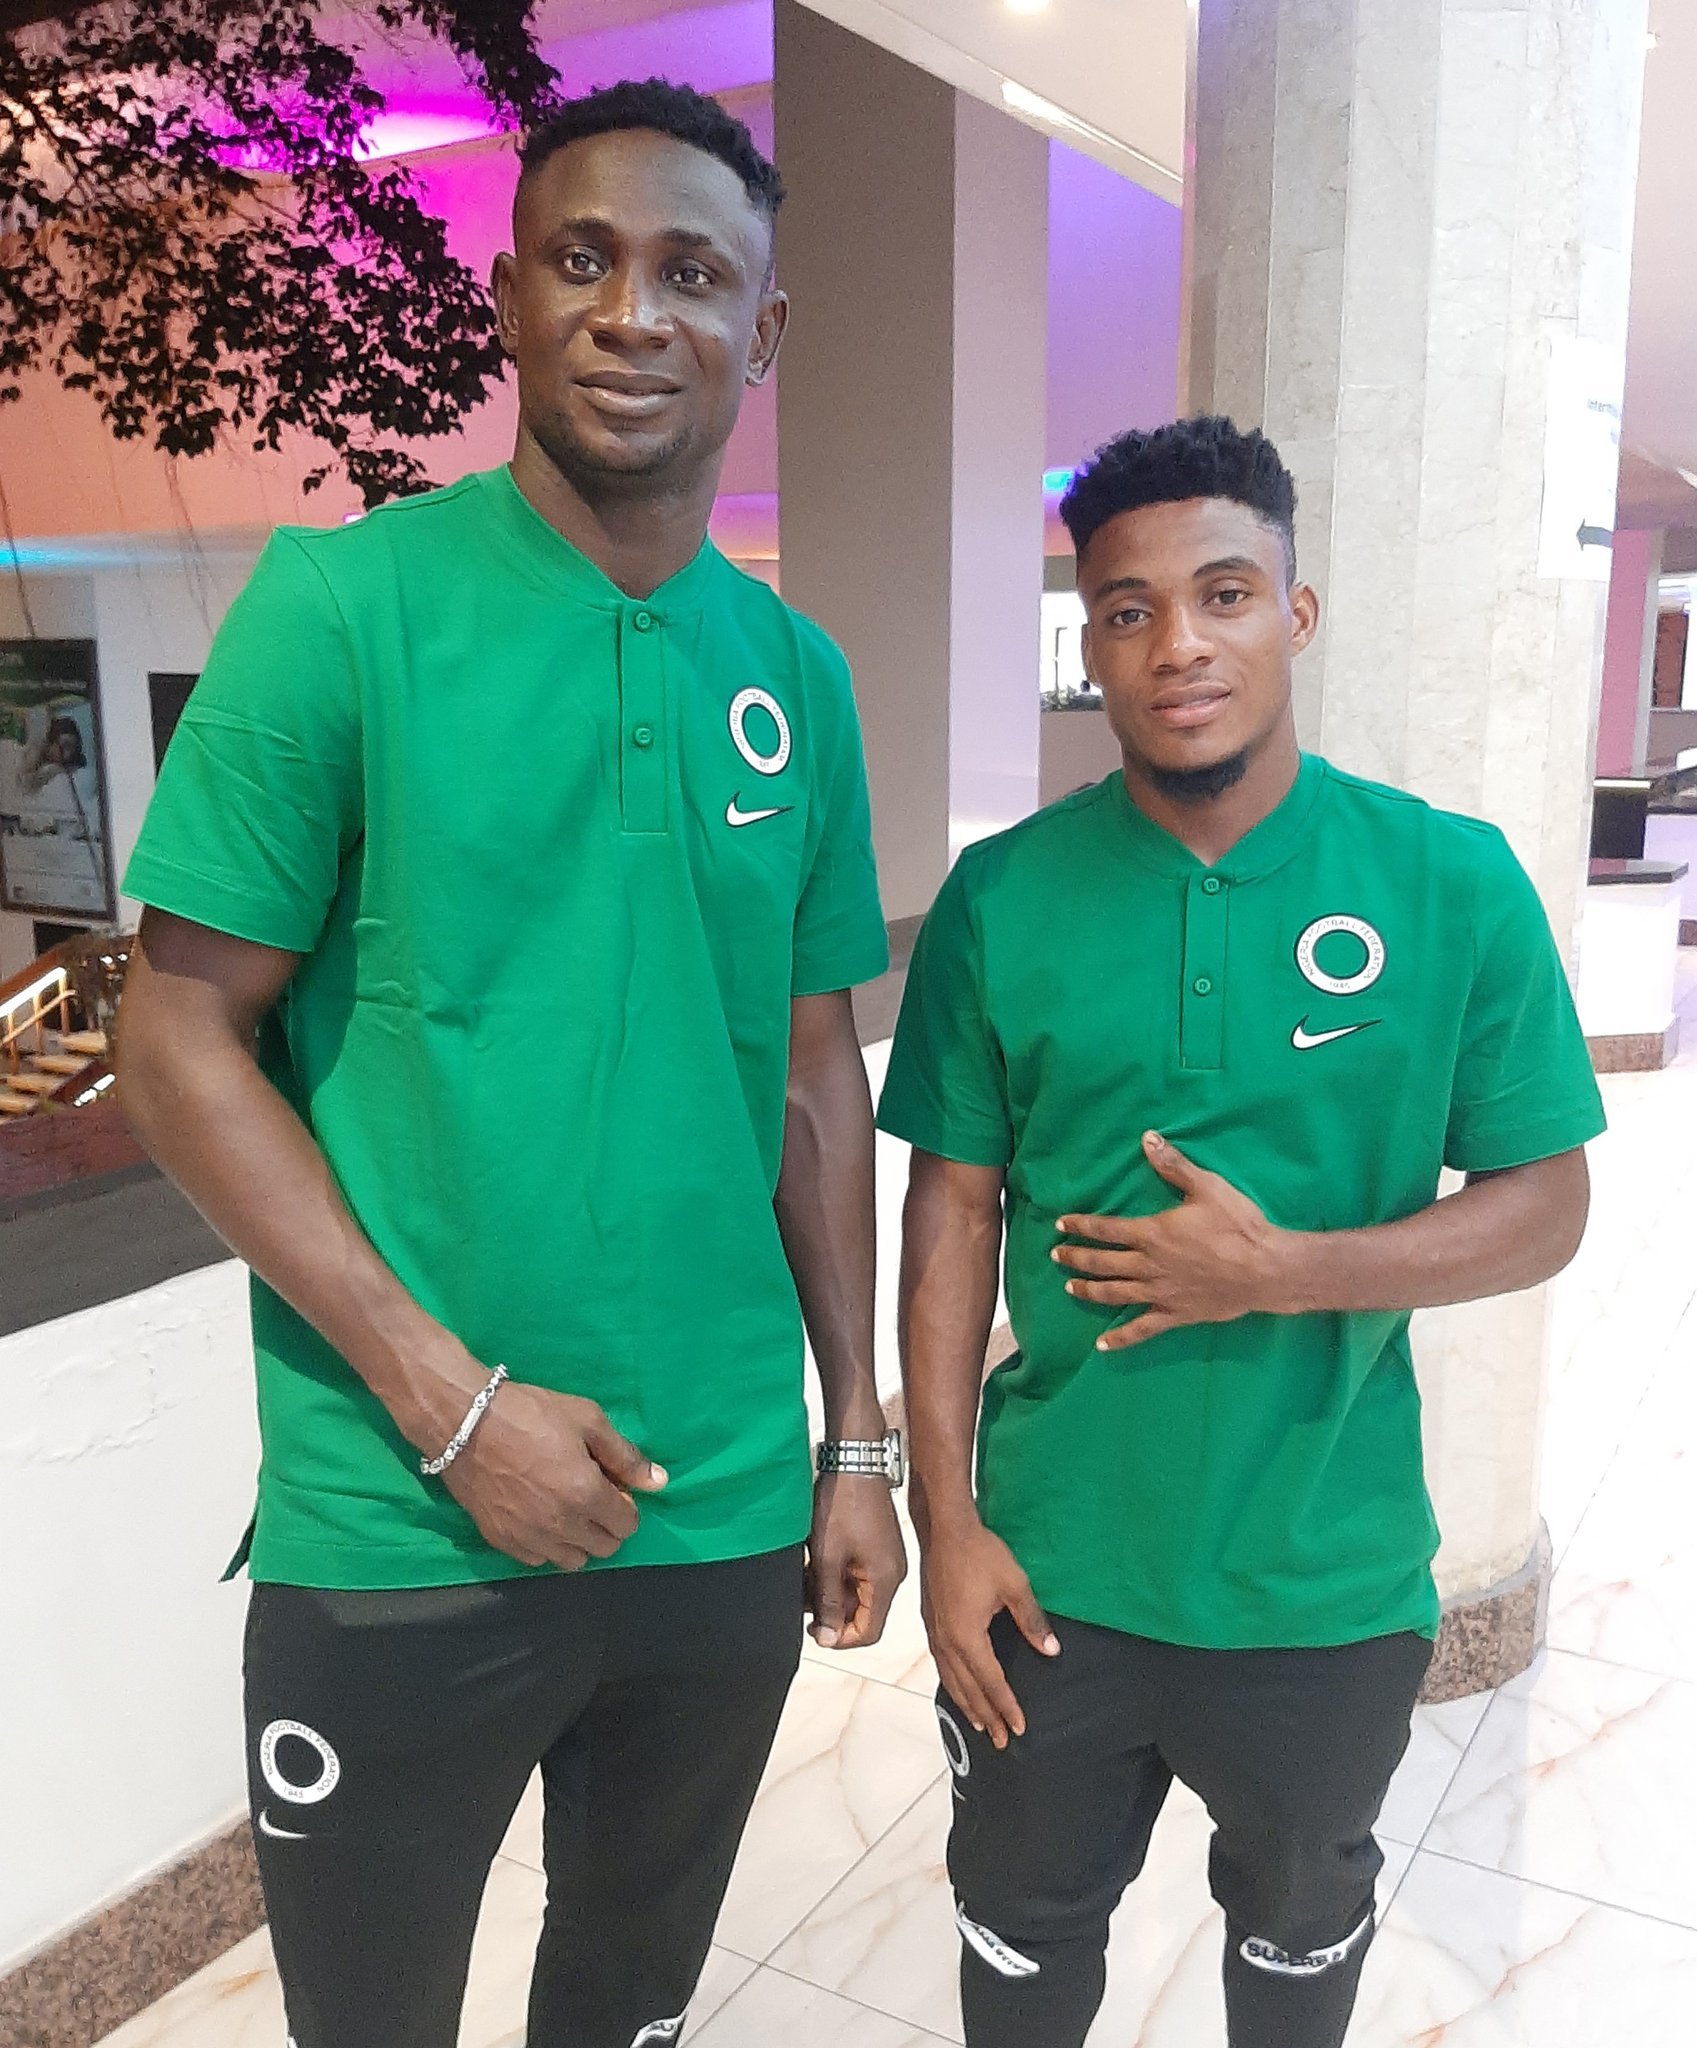 Super Eagles Camp Comes Alive As More Players Arrive For AFCON Qualifiers